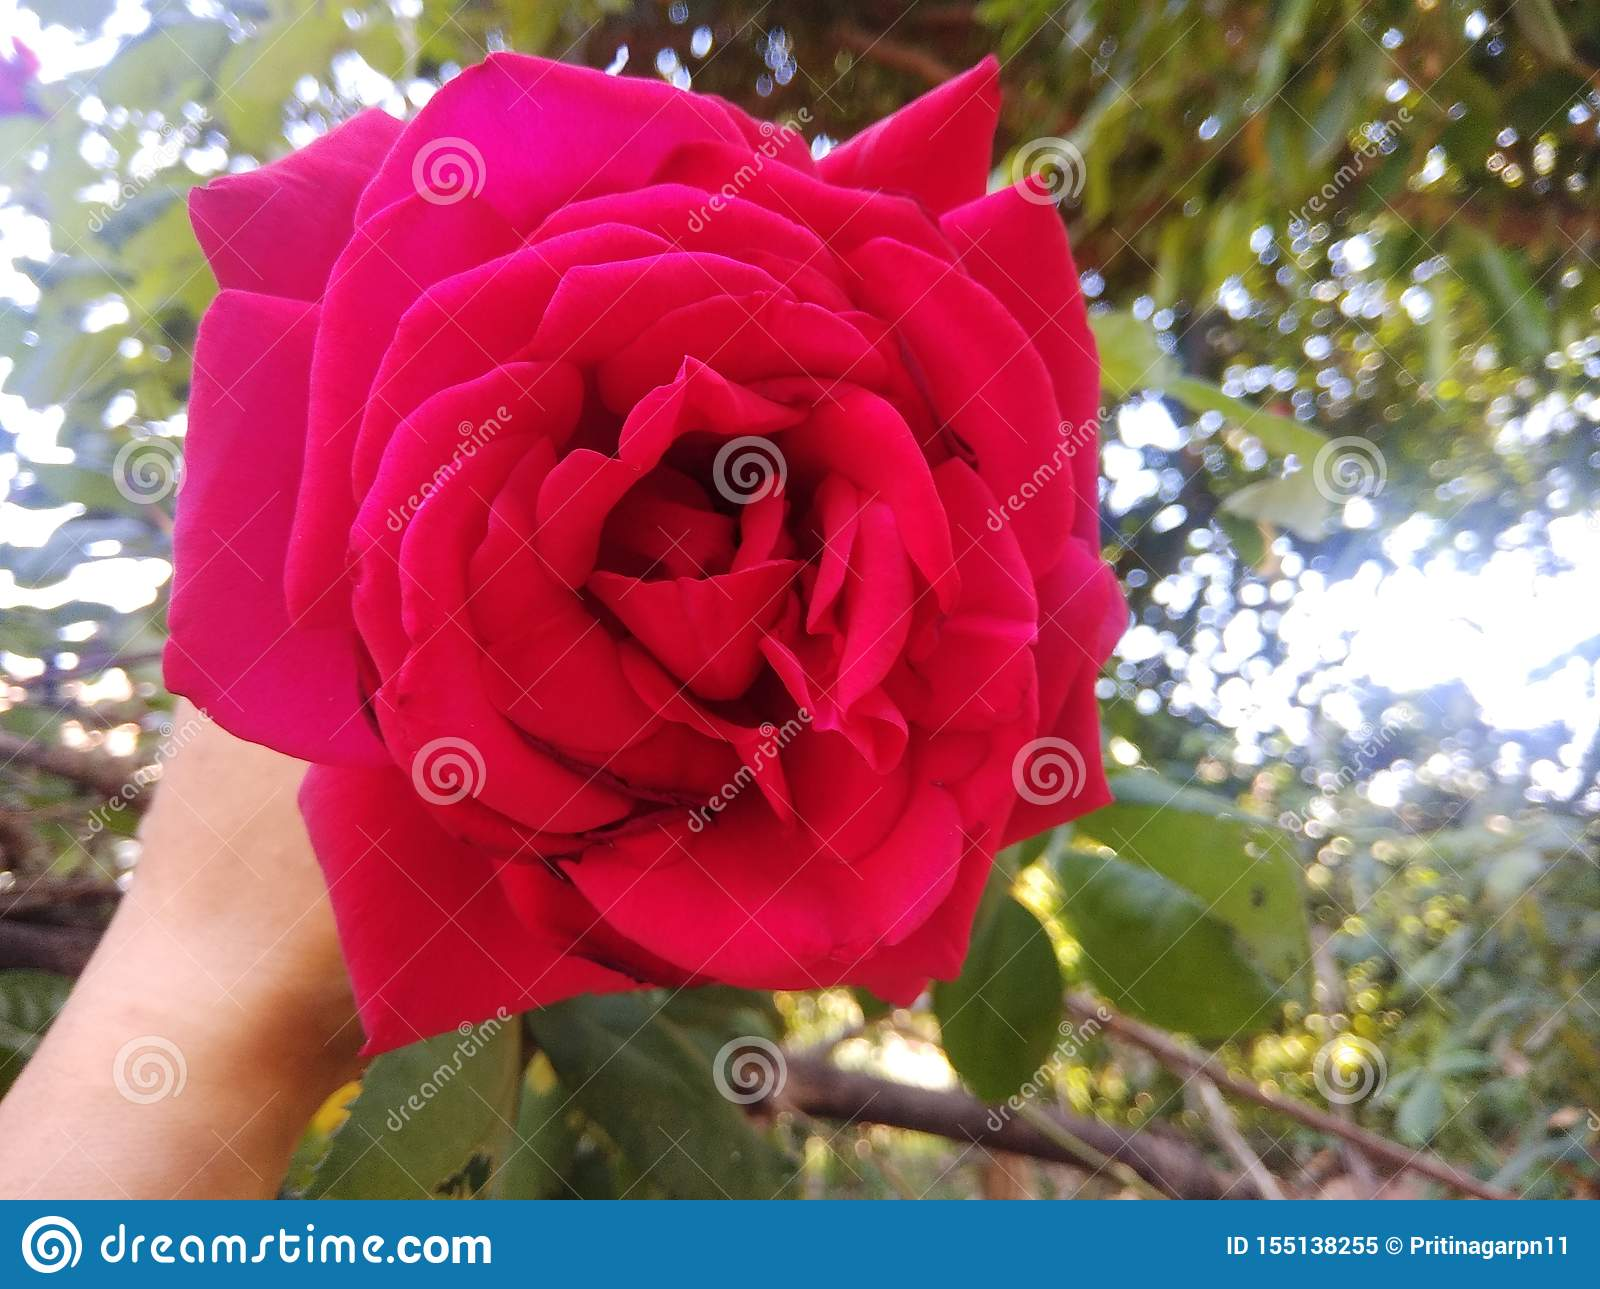 A beautiful rose to take a neutral glow in its